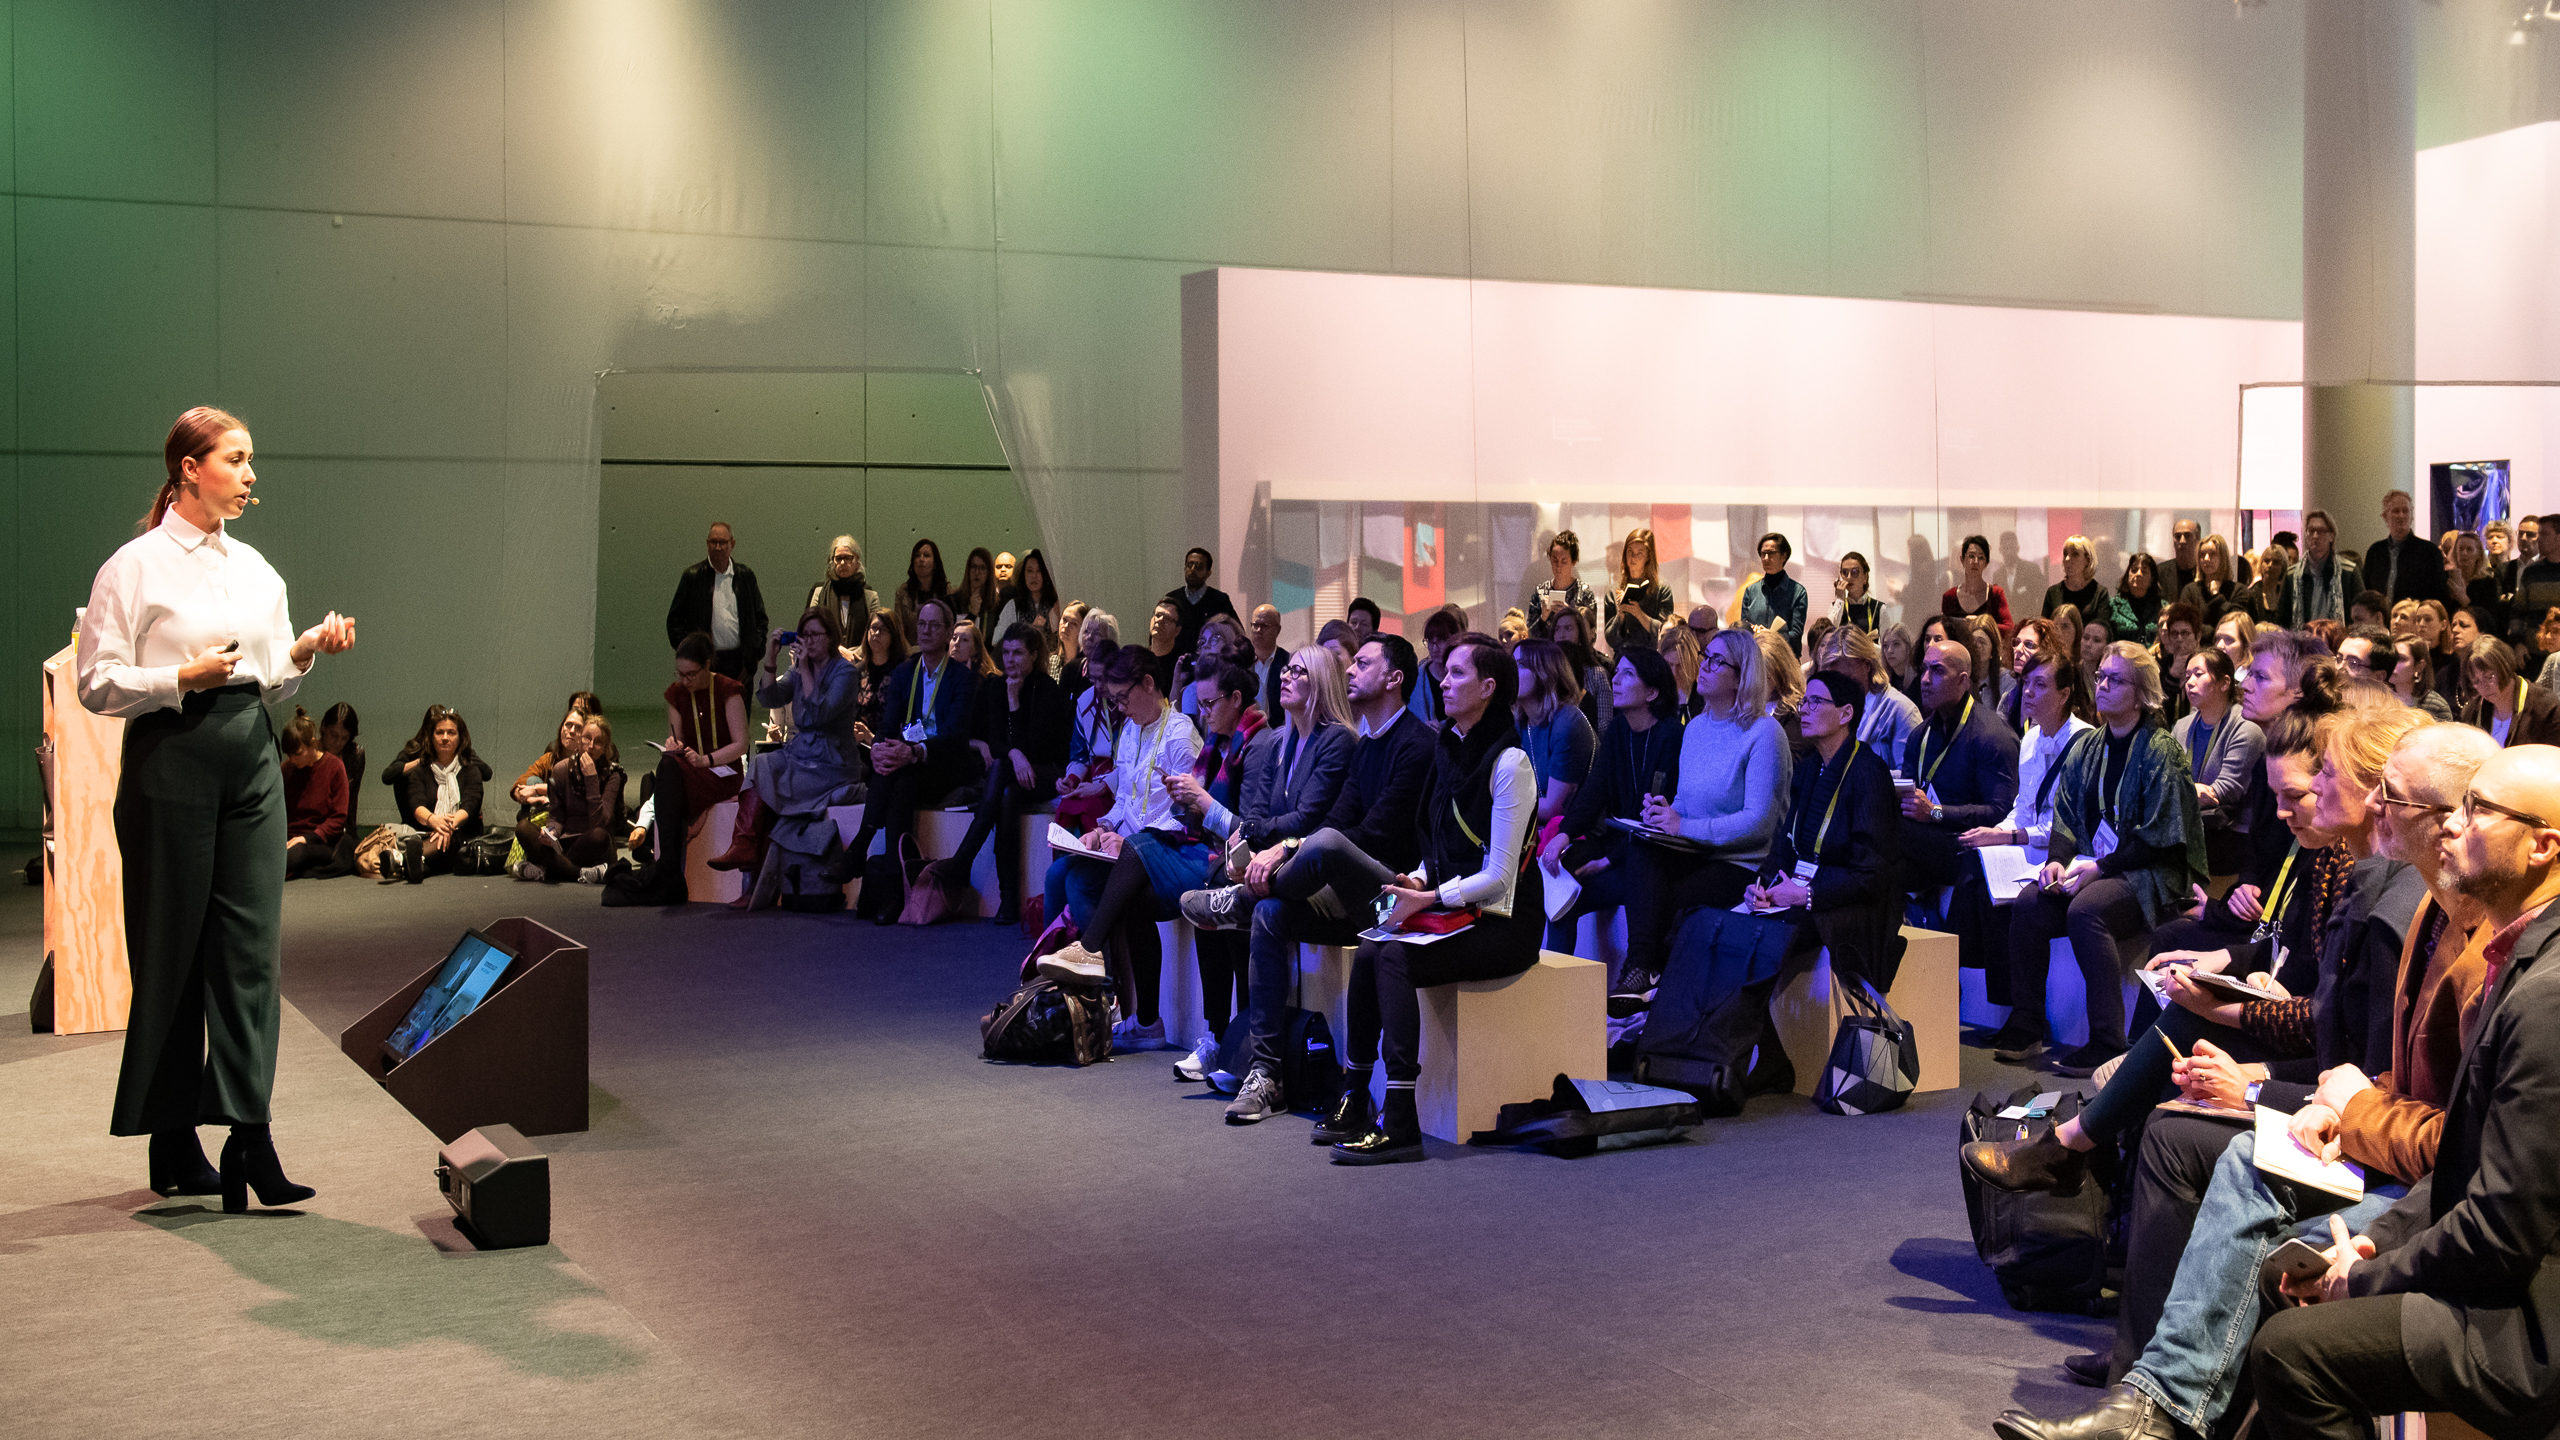 Trend space lecture area (Anja Bisgaard Gaede, SPOTT trends & business)